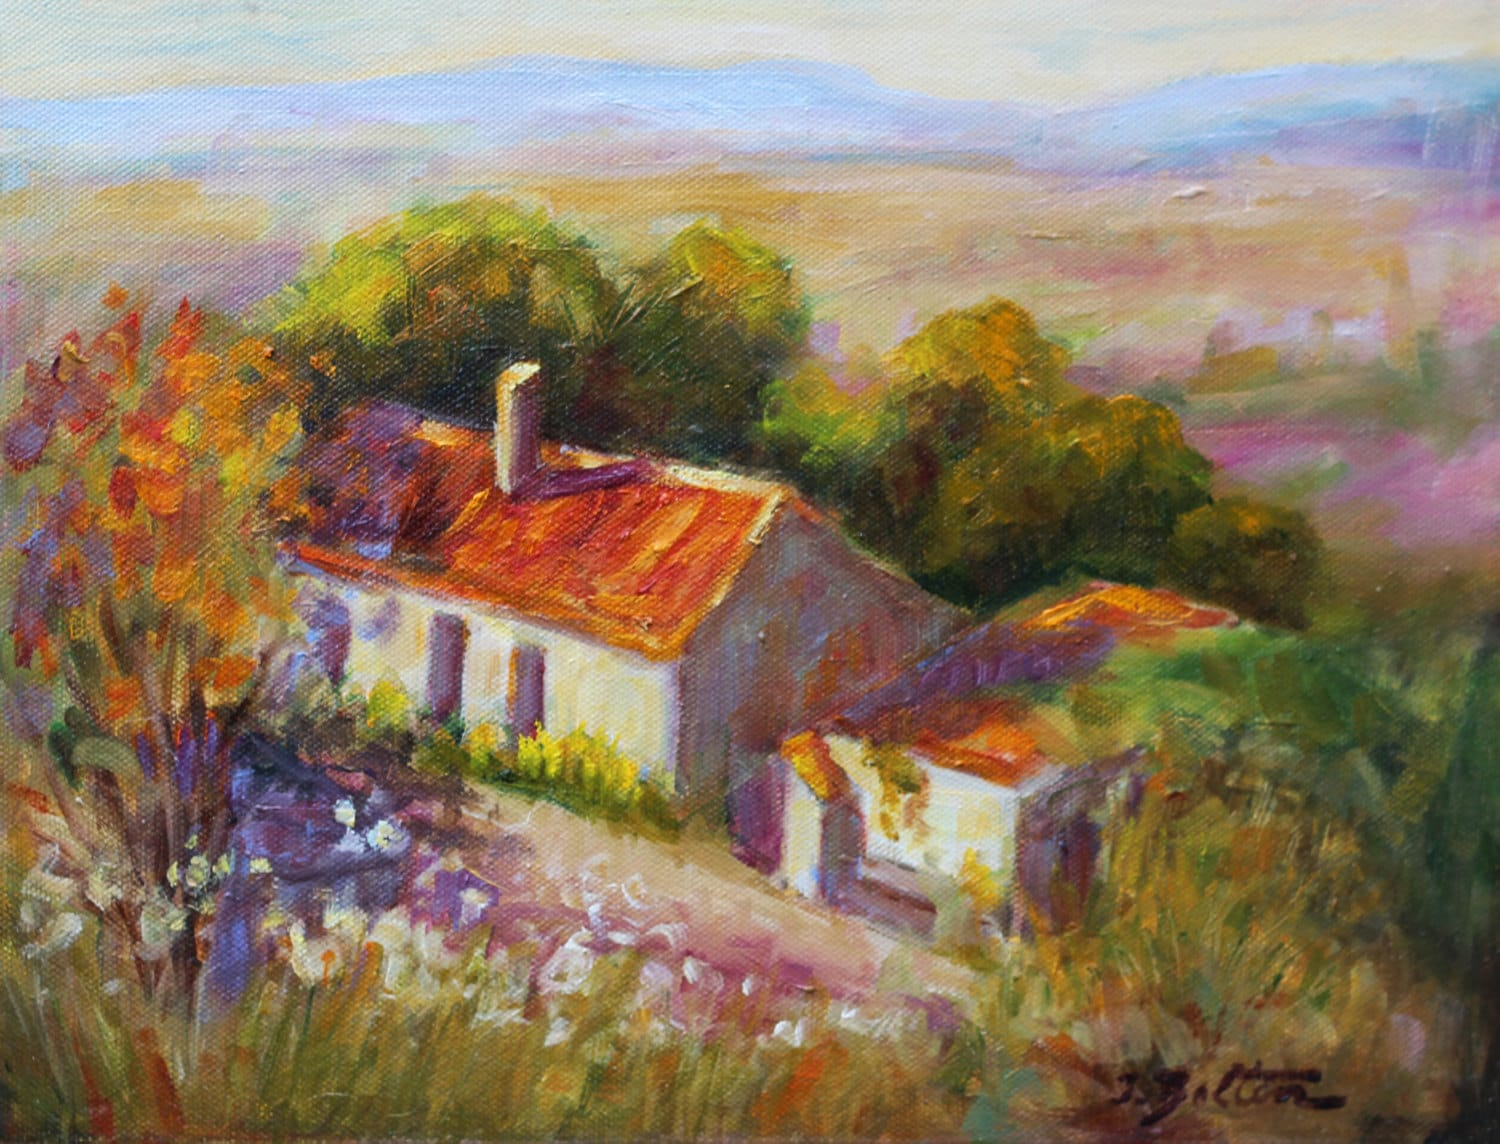 Old country farm house in spain painting by ingridspaintings for Oil paintings of houses